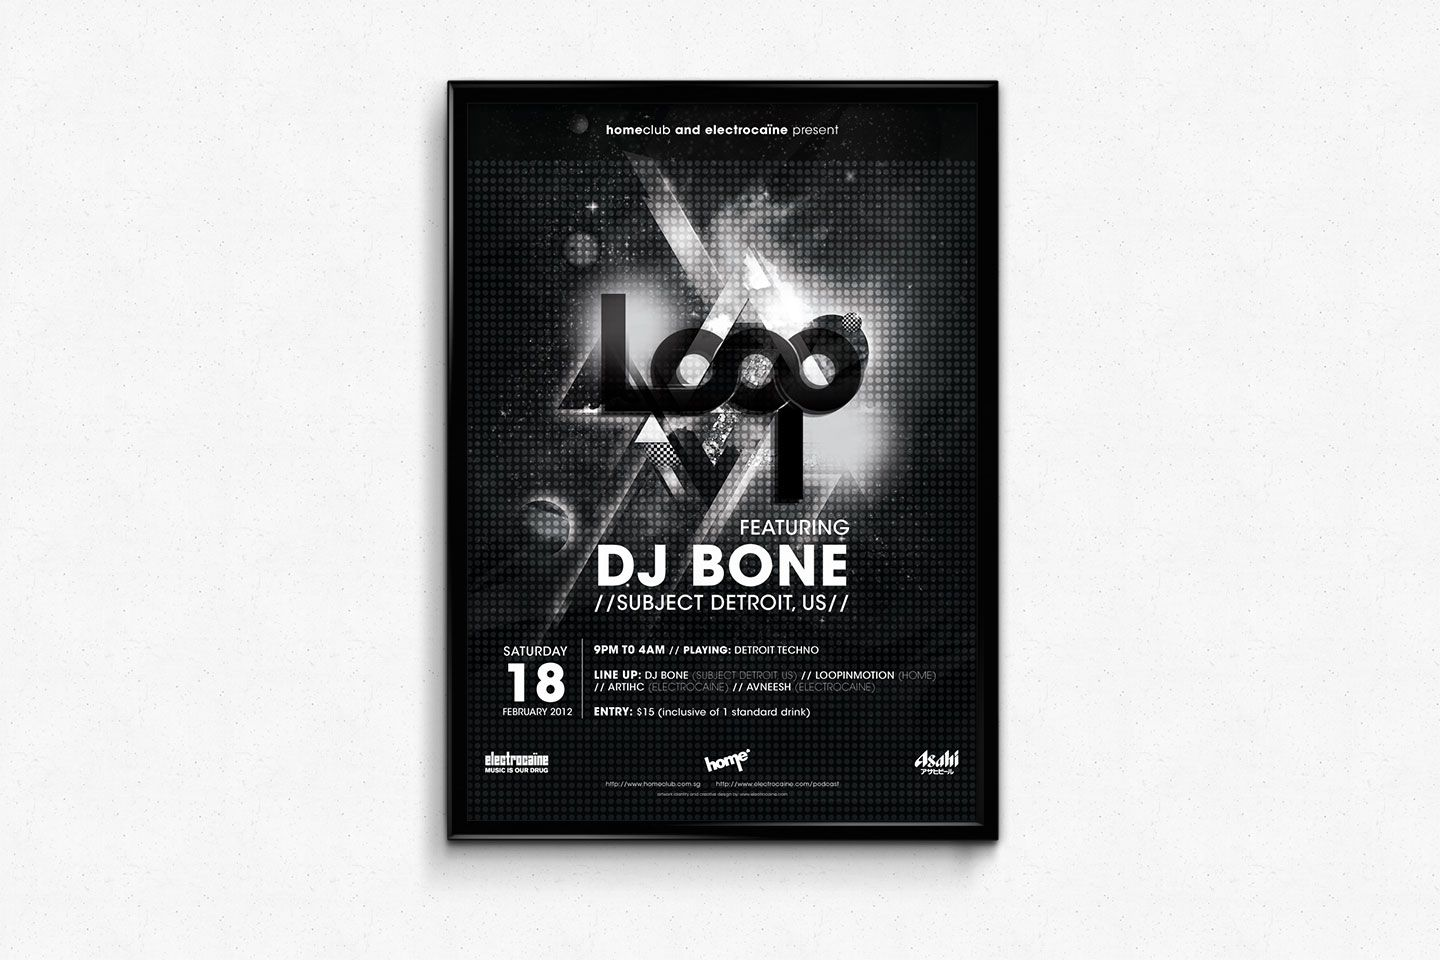 LOOP | a techno love-affair curated by electrocaïne, aims to bring back the raw power of this pure modernist style of synthesized soul. it is more than just a narrowly defined genre or style. It is a way of thinking. it's the beauty of repetitive beats and rhythms that oscillates, grows, diminishes, breathes…and goes doop doopp doop dooopp, like the constant beat of your heart.